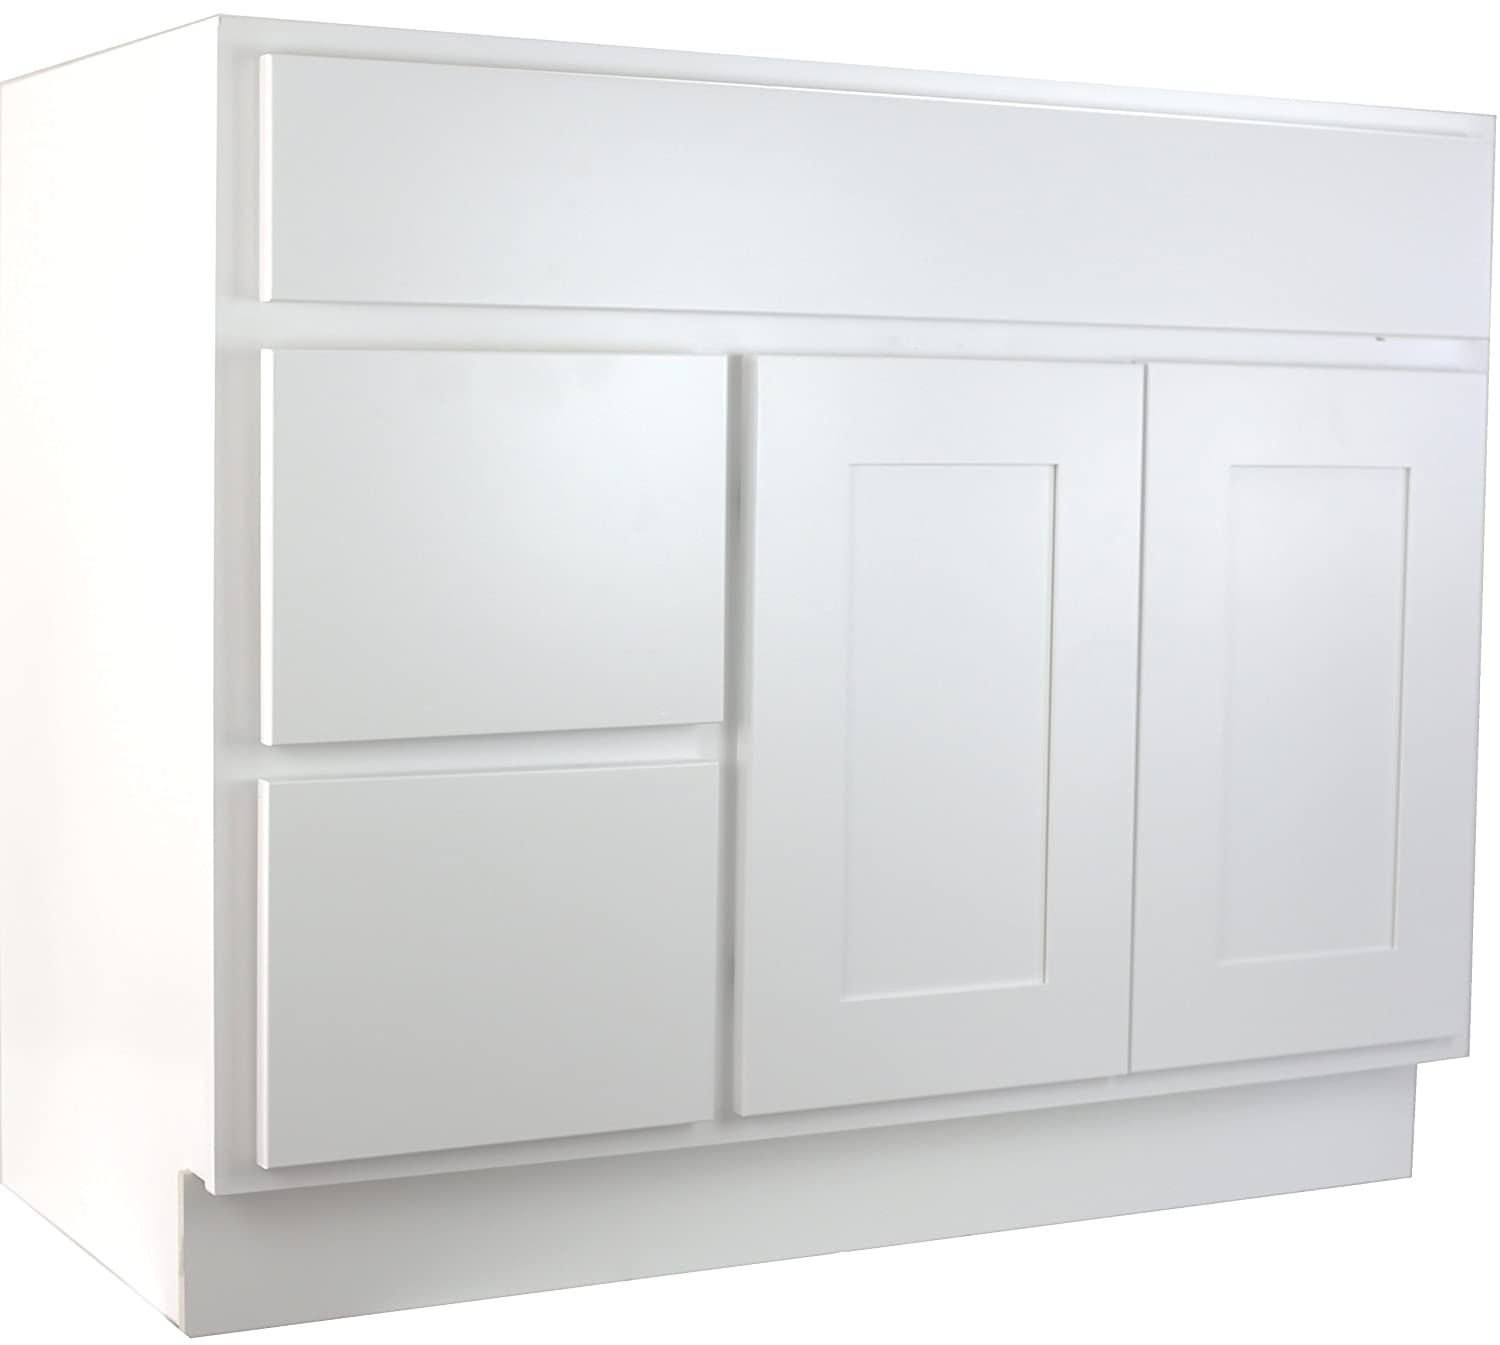 Cabinet Mania: White Shaker 36 Inch Bathroom Vanity With Left Drawers Sink  RTA Cabinet - Ready To Assemble - 100% All Wood Construction, Lowest Price  Online